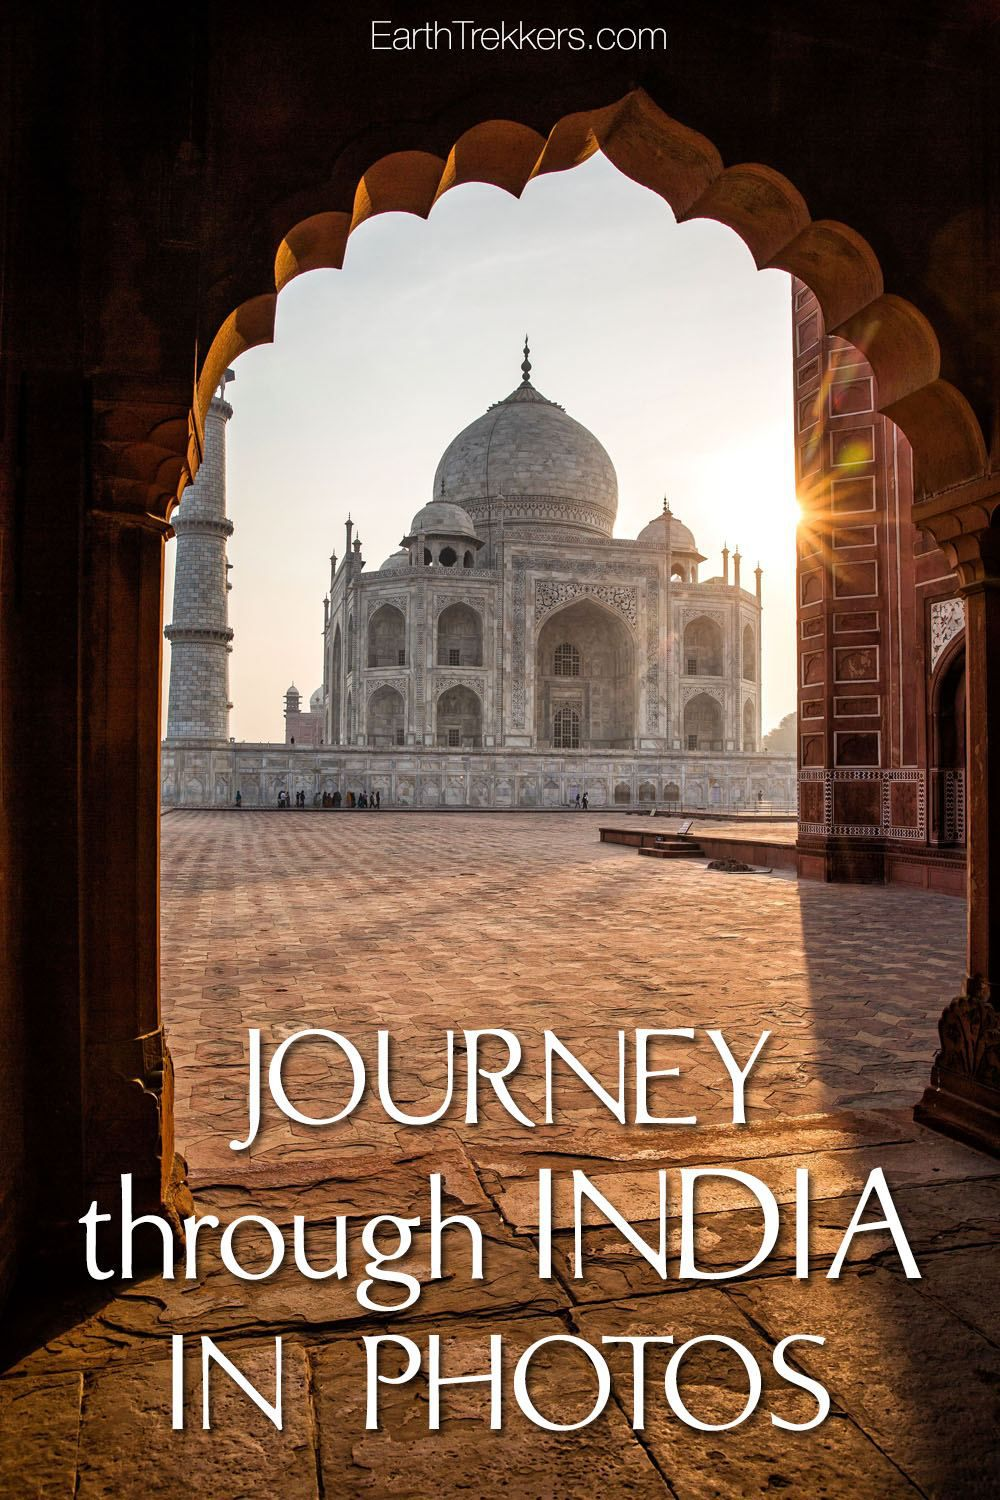 A journey through India in Photos